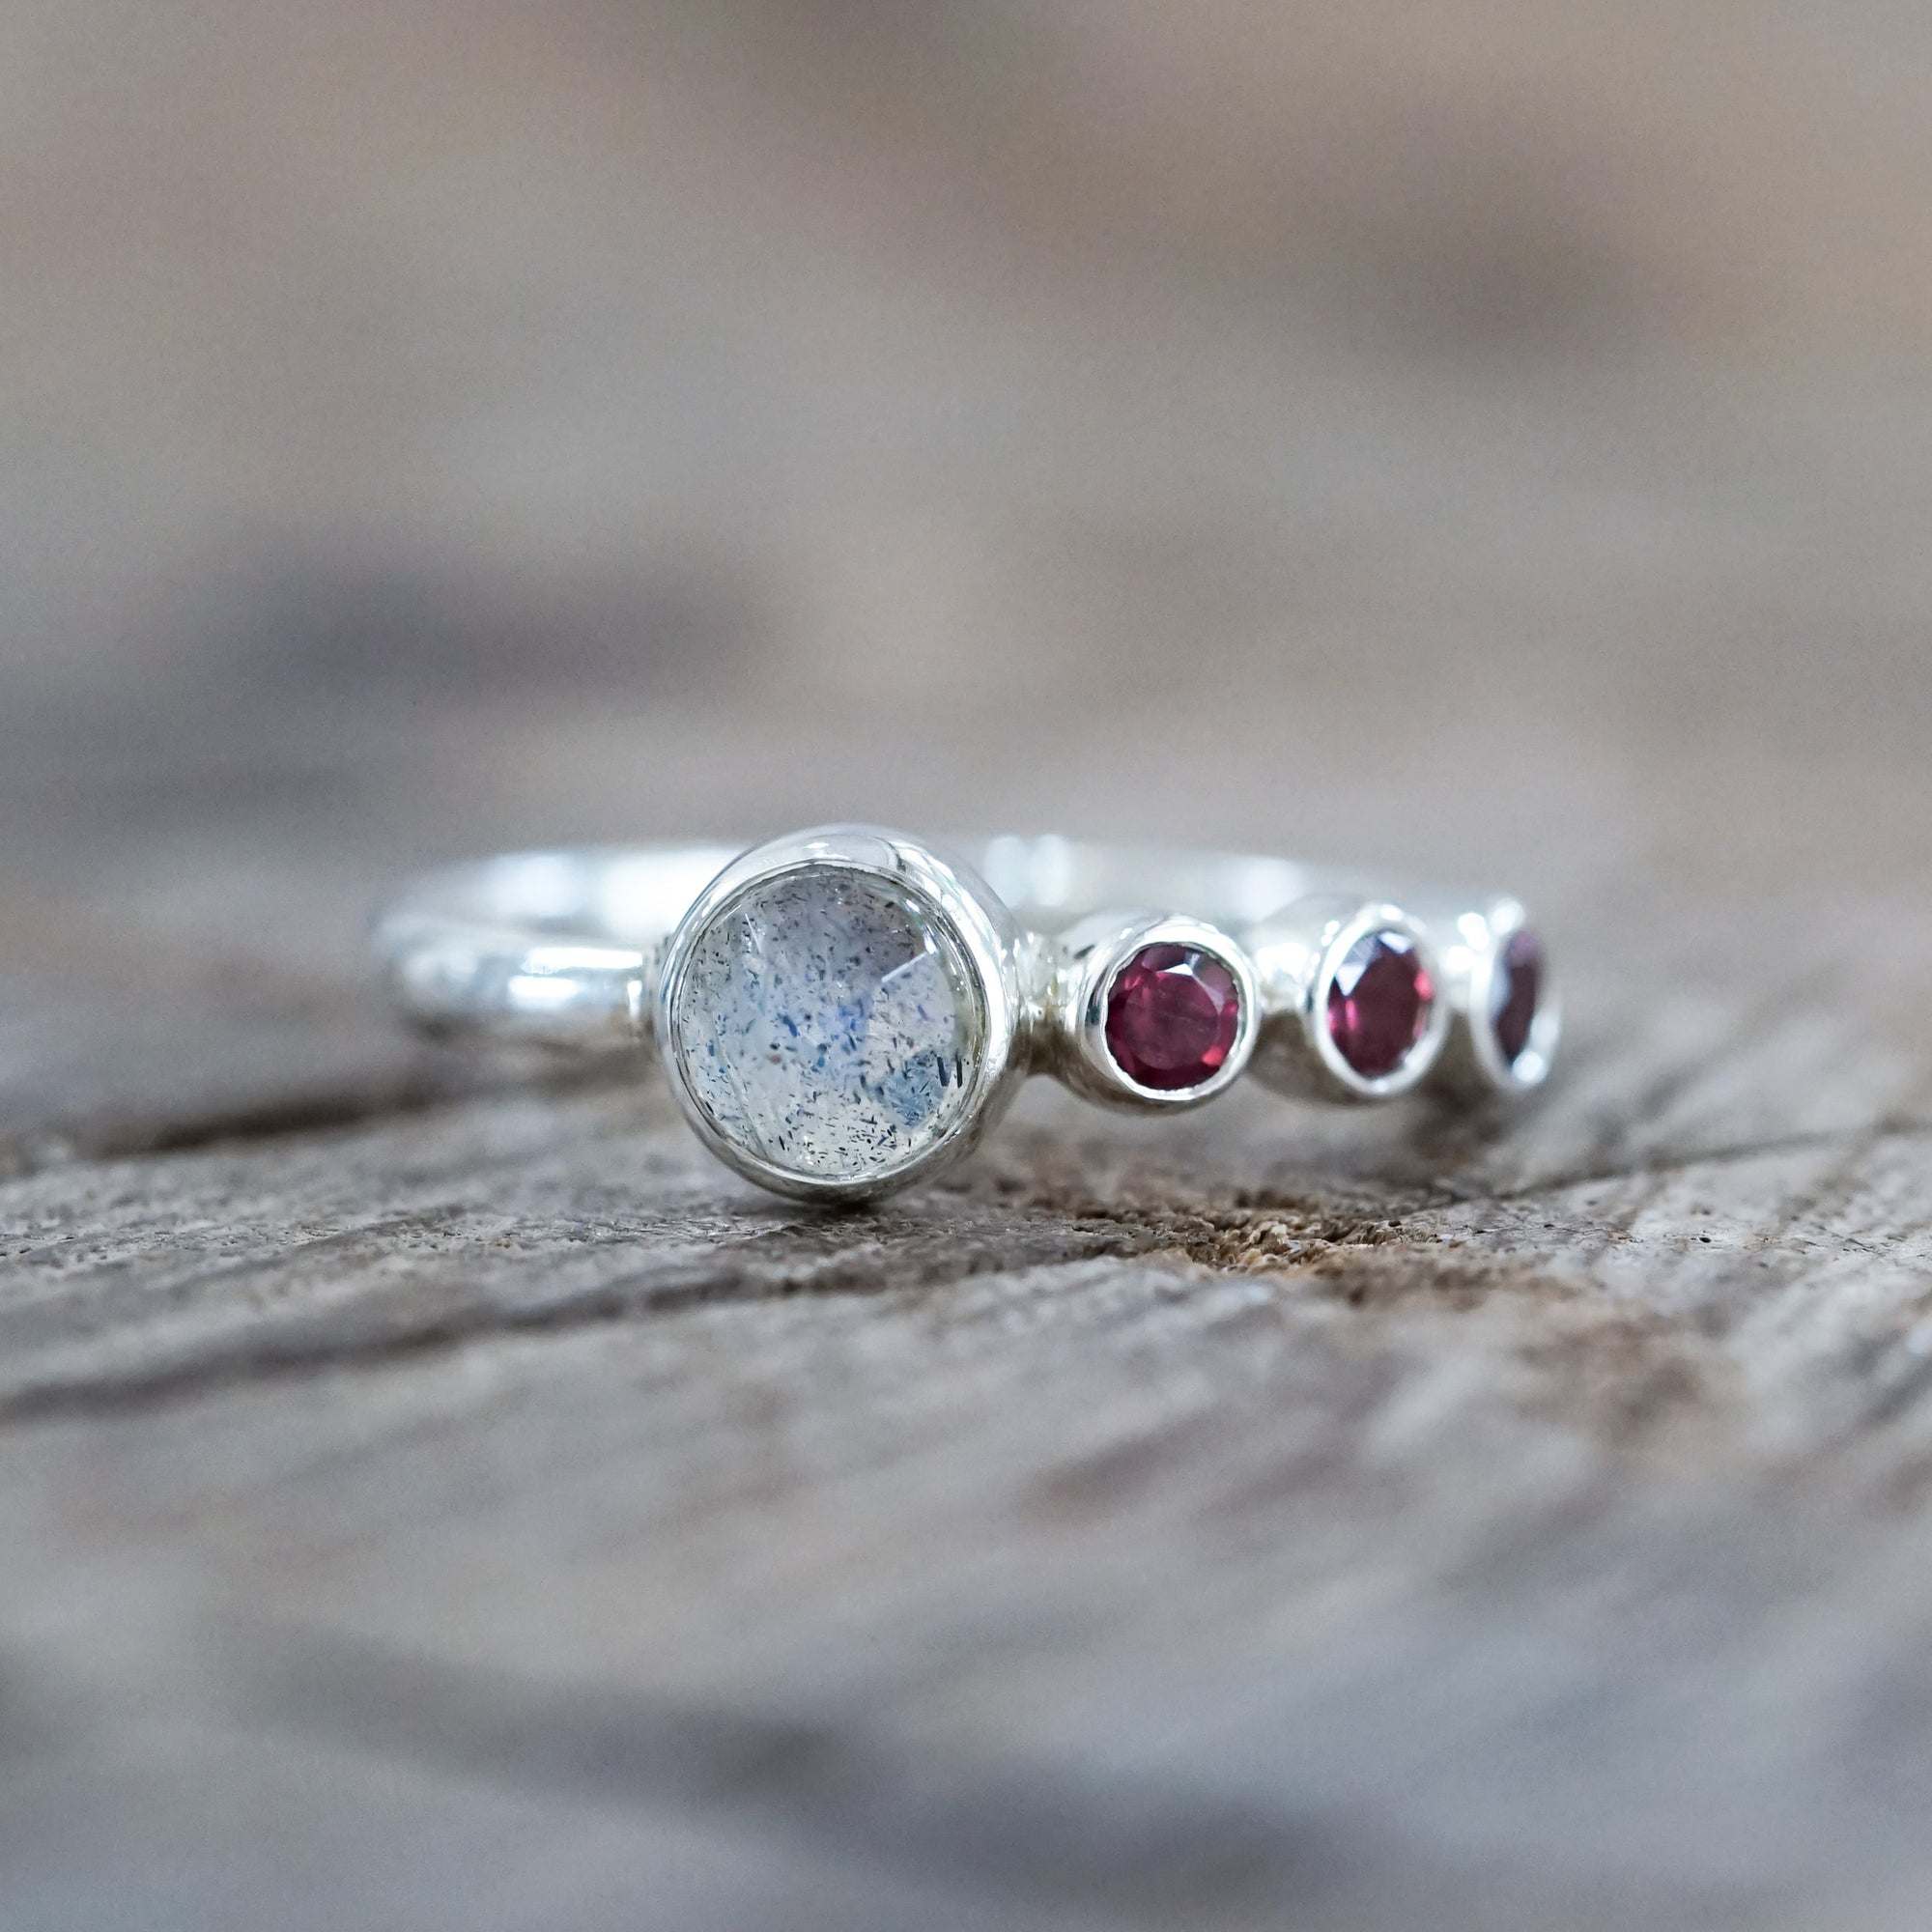 Rose Cut Labradorite and Garnet Ring